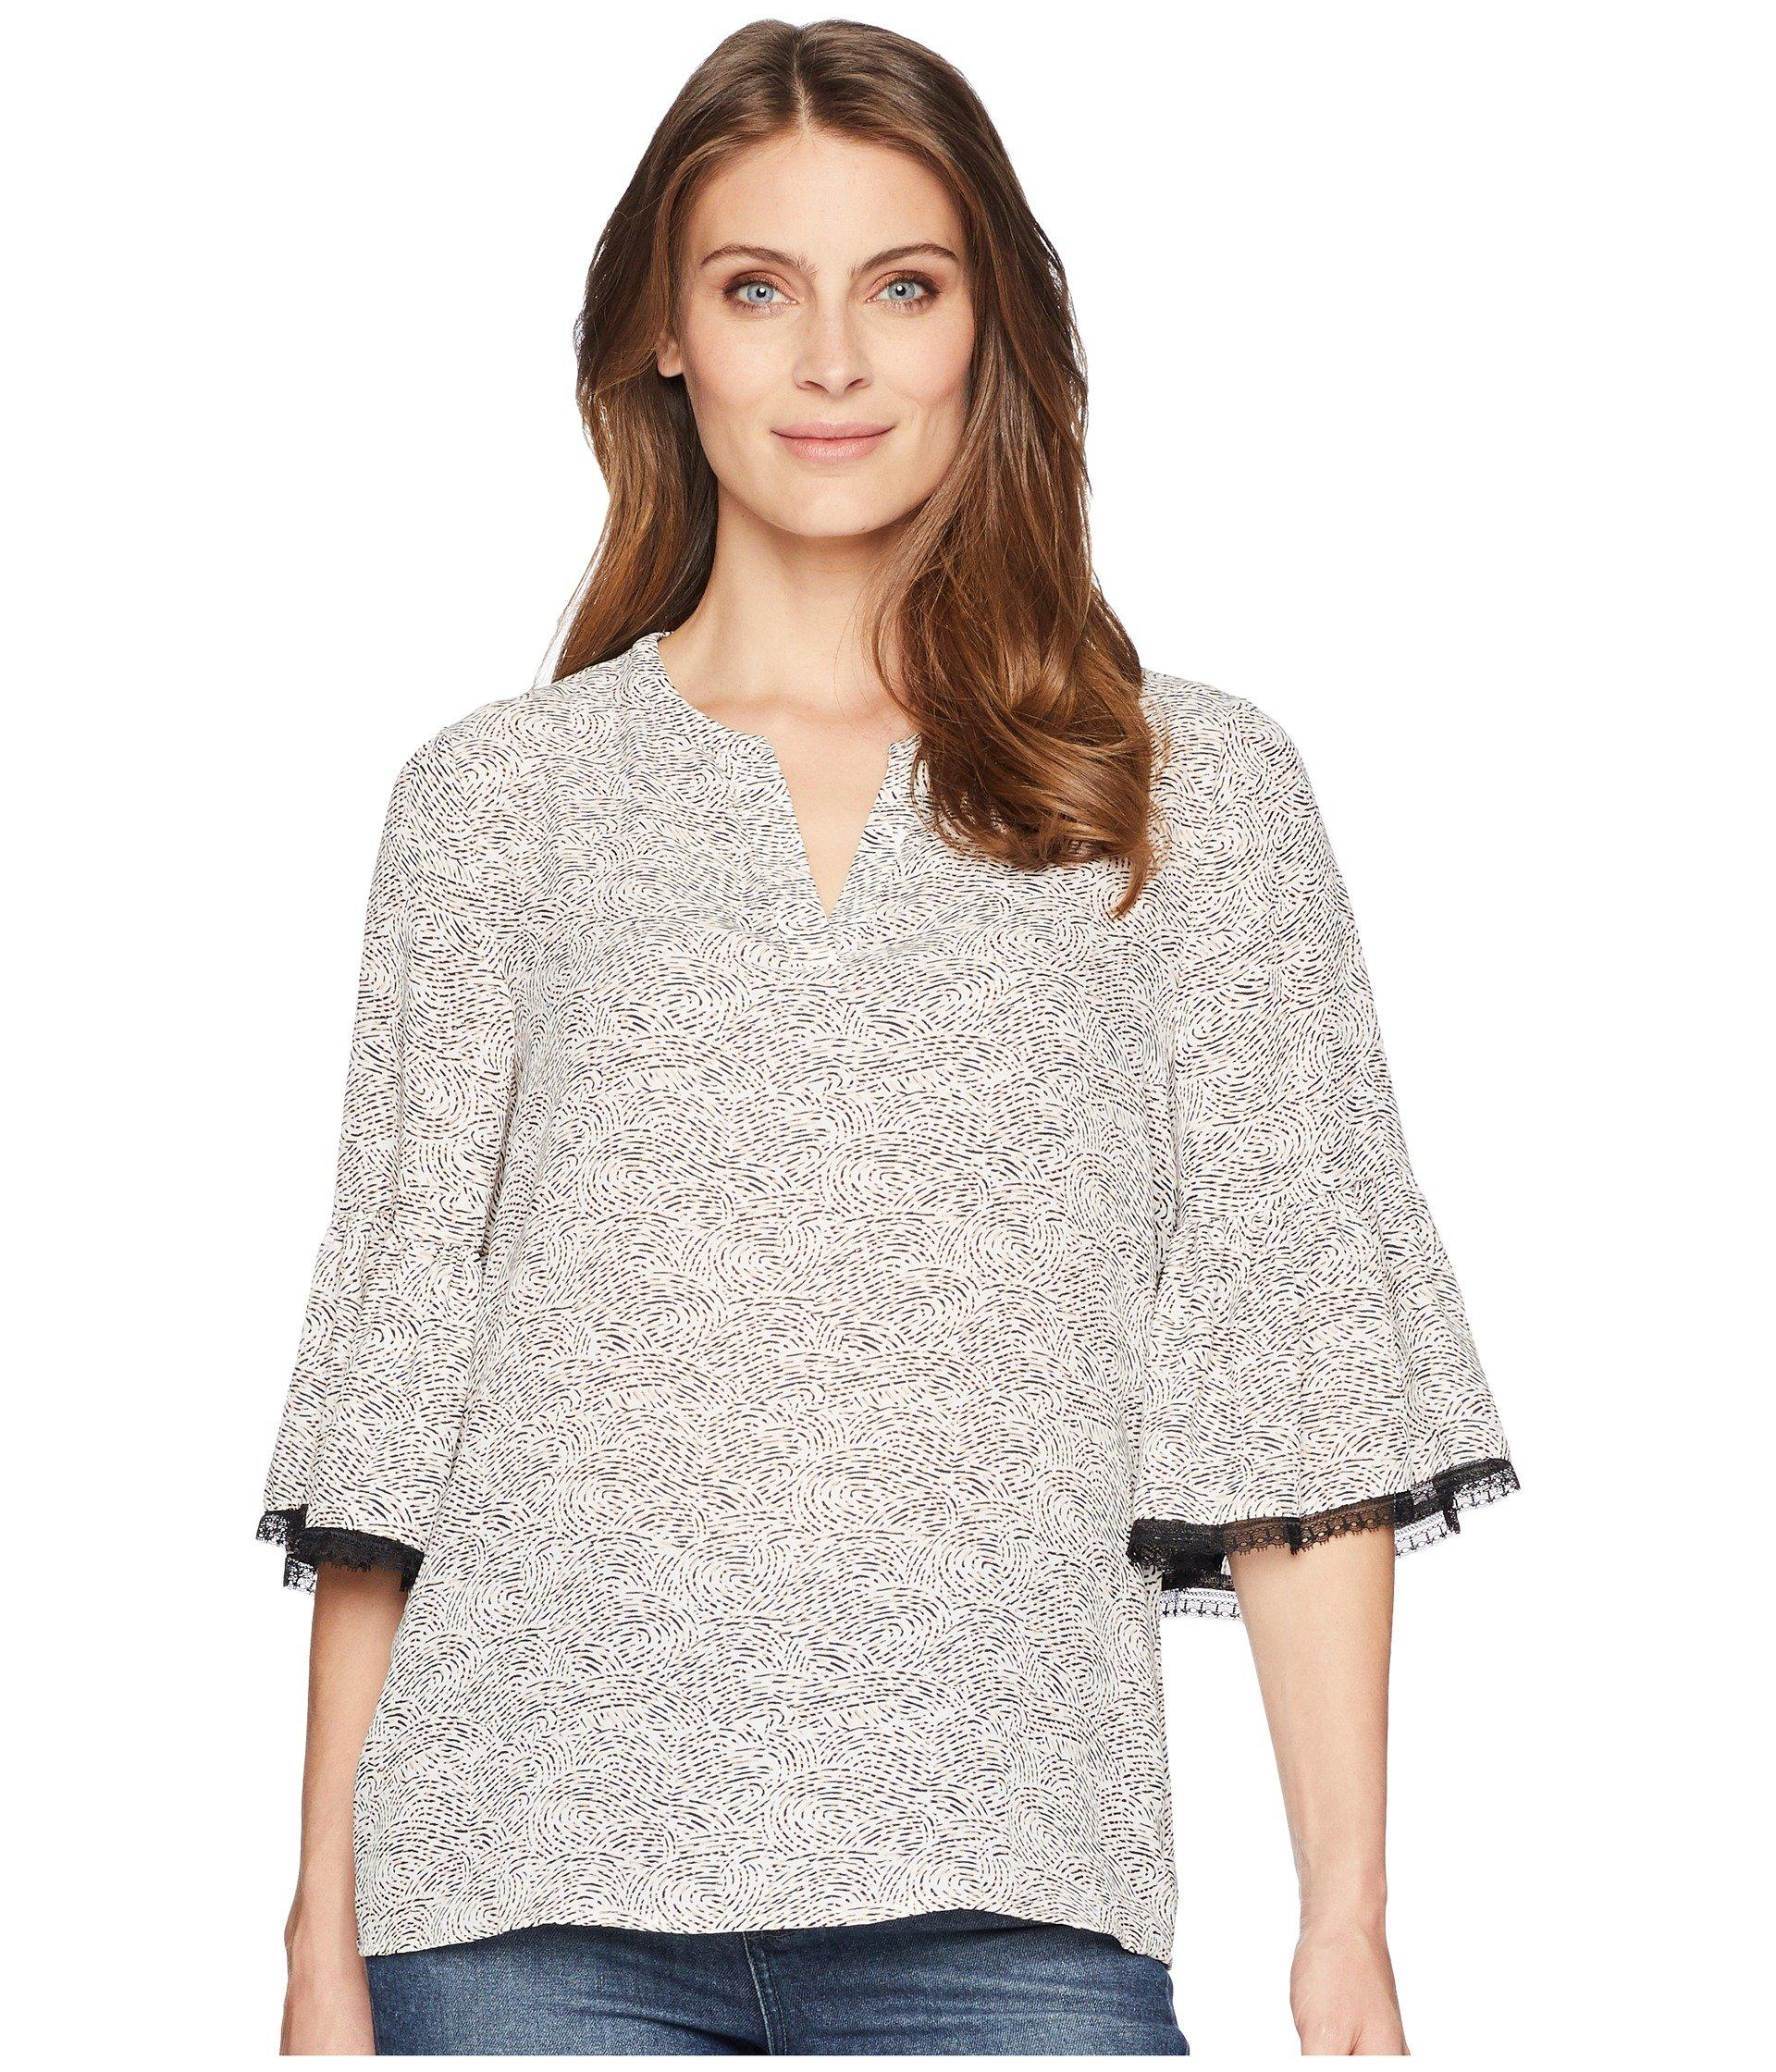 660c3f70df2ea Lyst - Ivanka Trump Flared Sleeve Printed Blouse With Open Hem in White